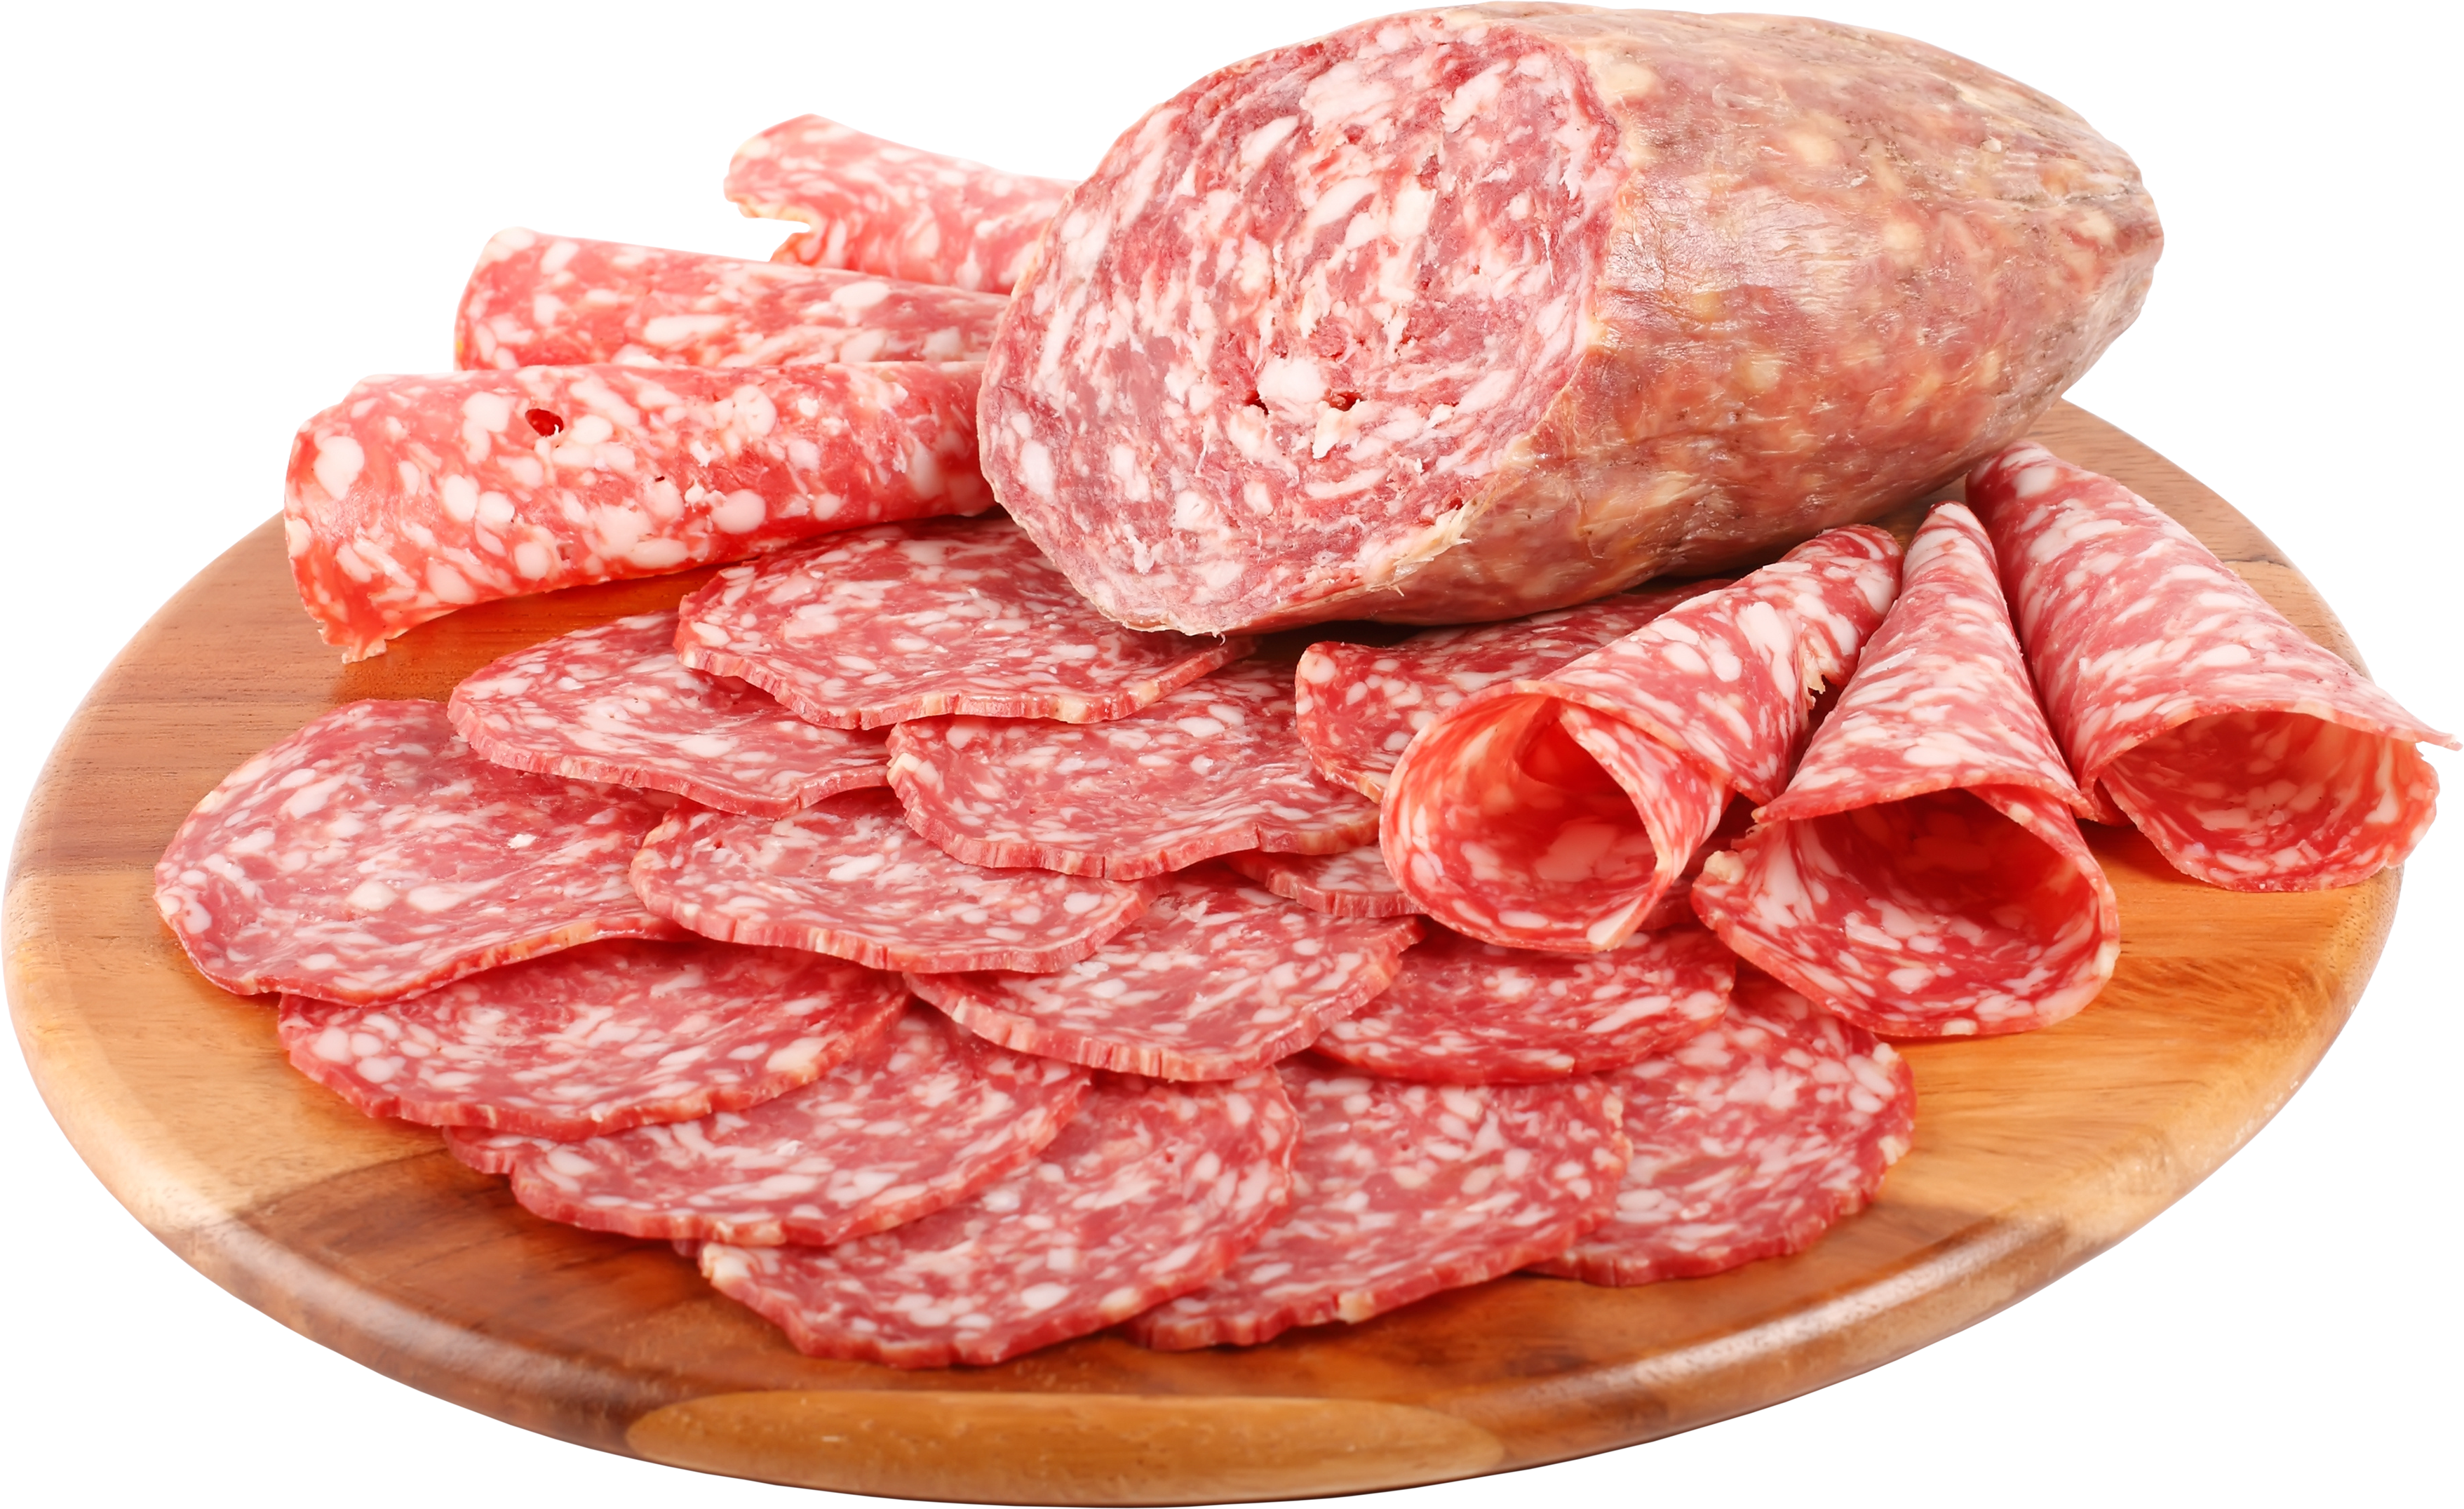 Maret, Chicken, Sausage, Beef, Sausage Png PNG Images